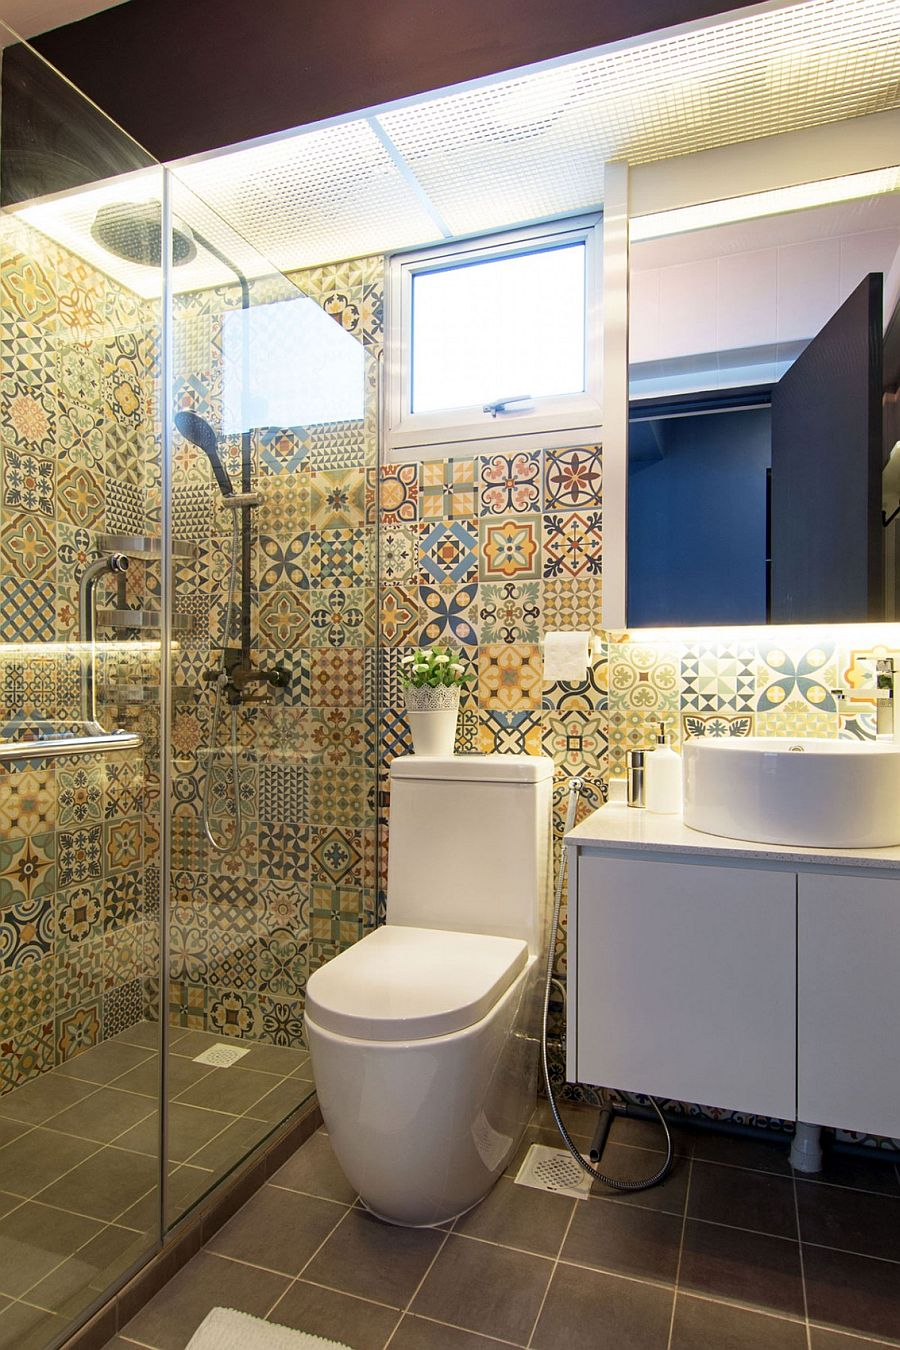 Colorful tiless give the modern bathroom a playful appeal